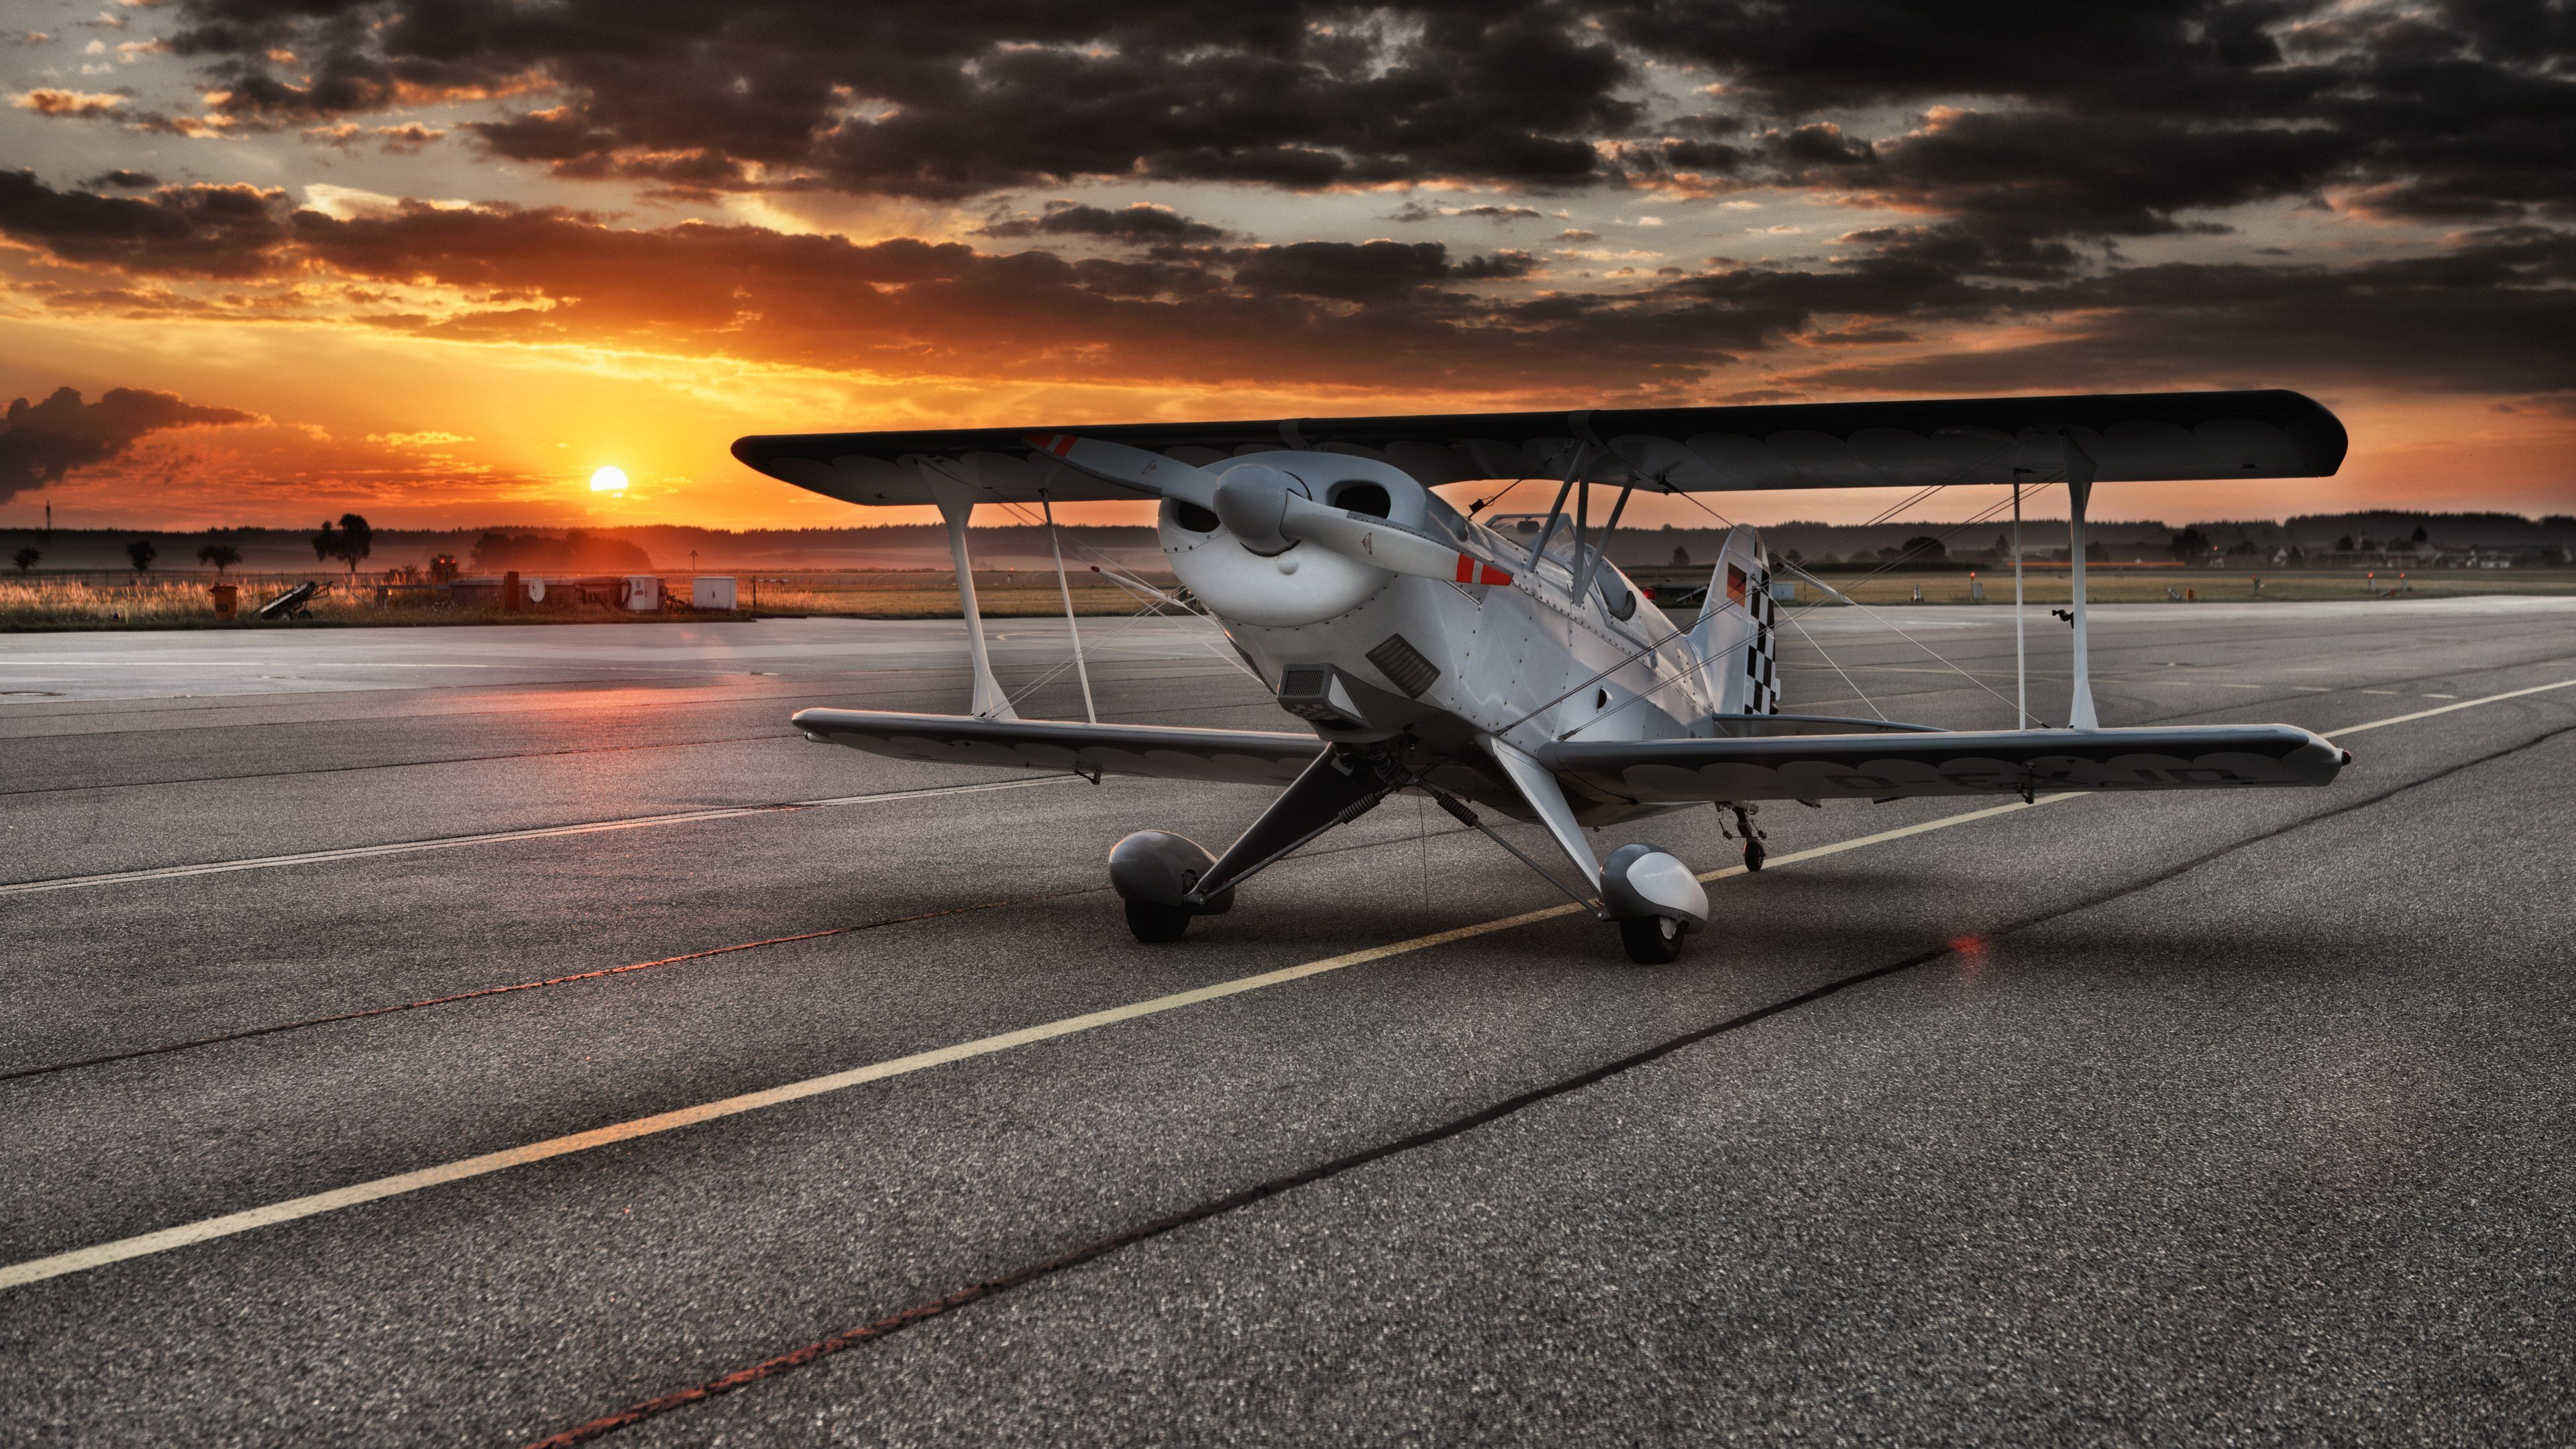 Small Airport Aircraft Wallpapers 50127 3840x2160px